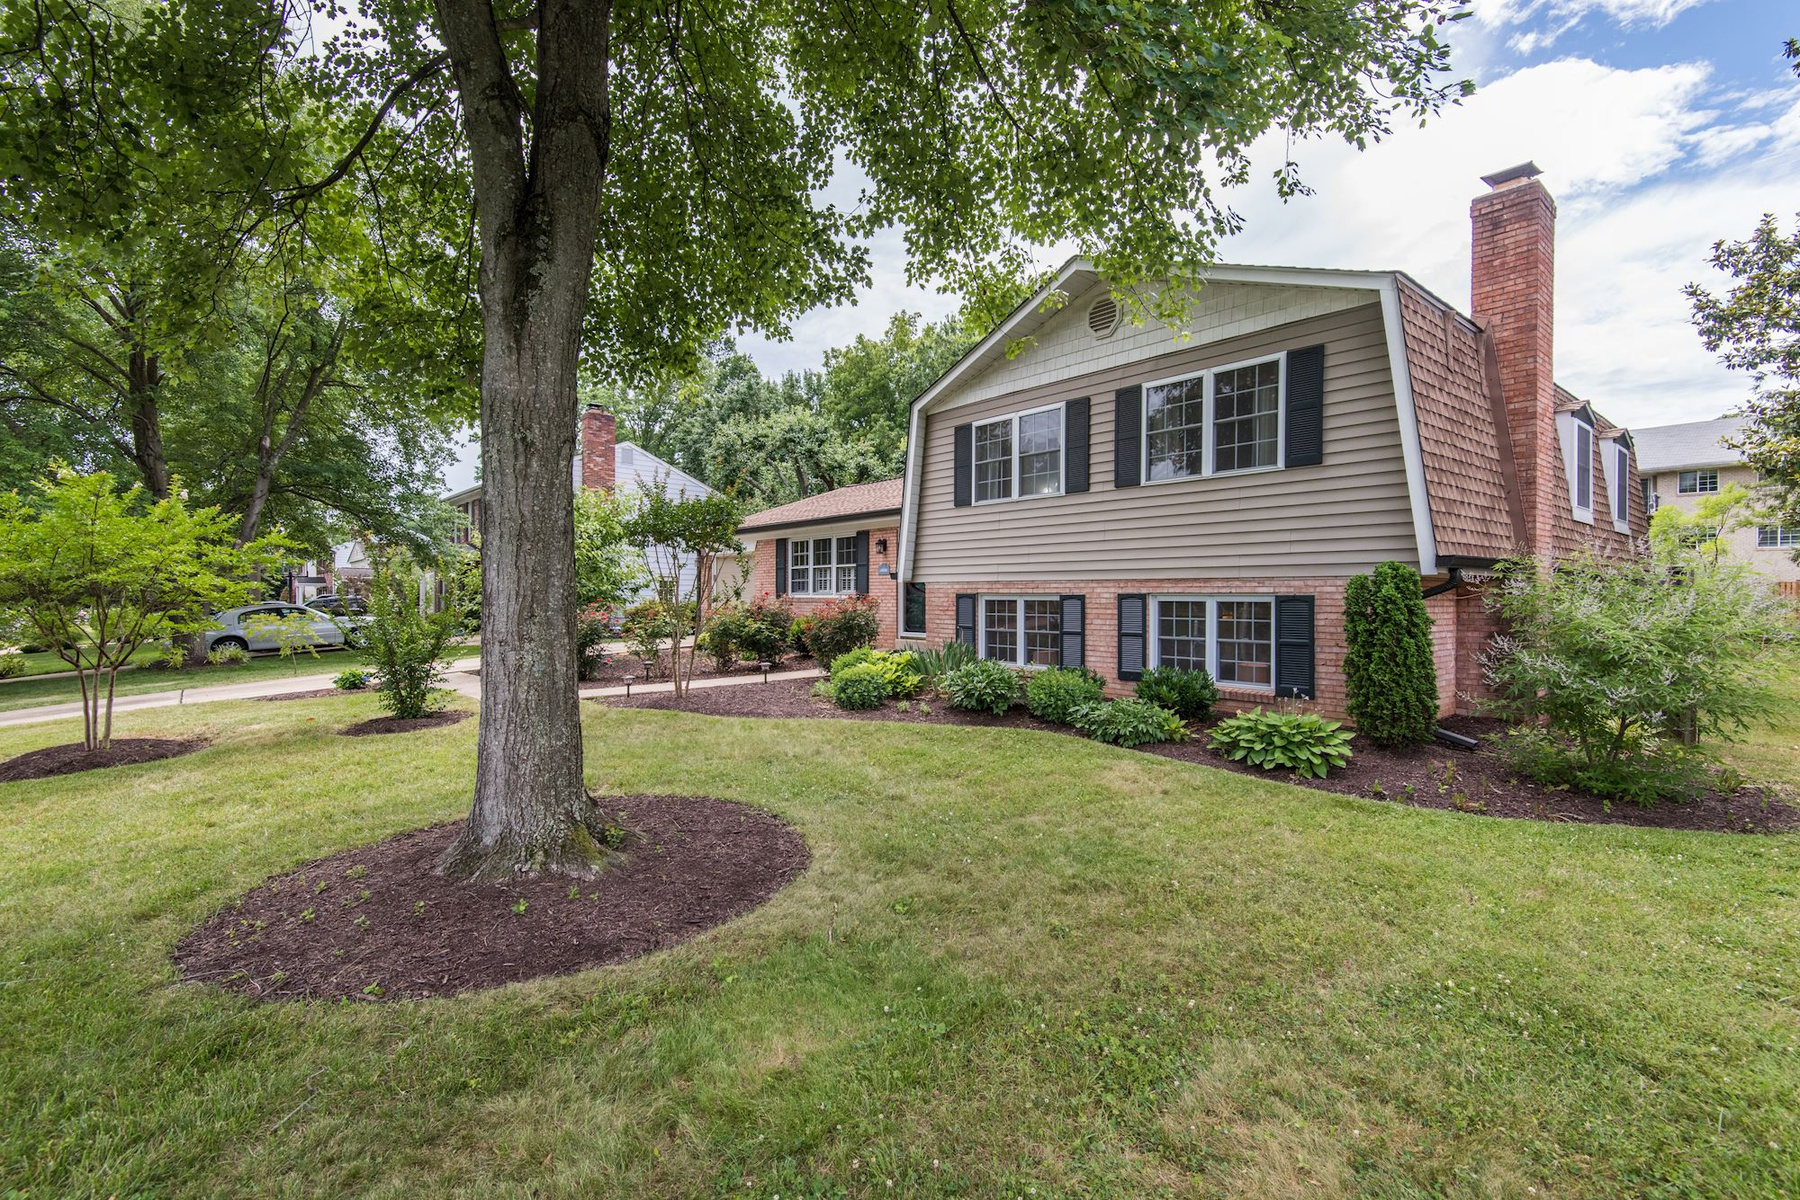 Single Family Home for Sale at 7518 Milway Drive, Alexandria Alexandria, Virginia 22306 United States